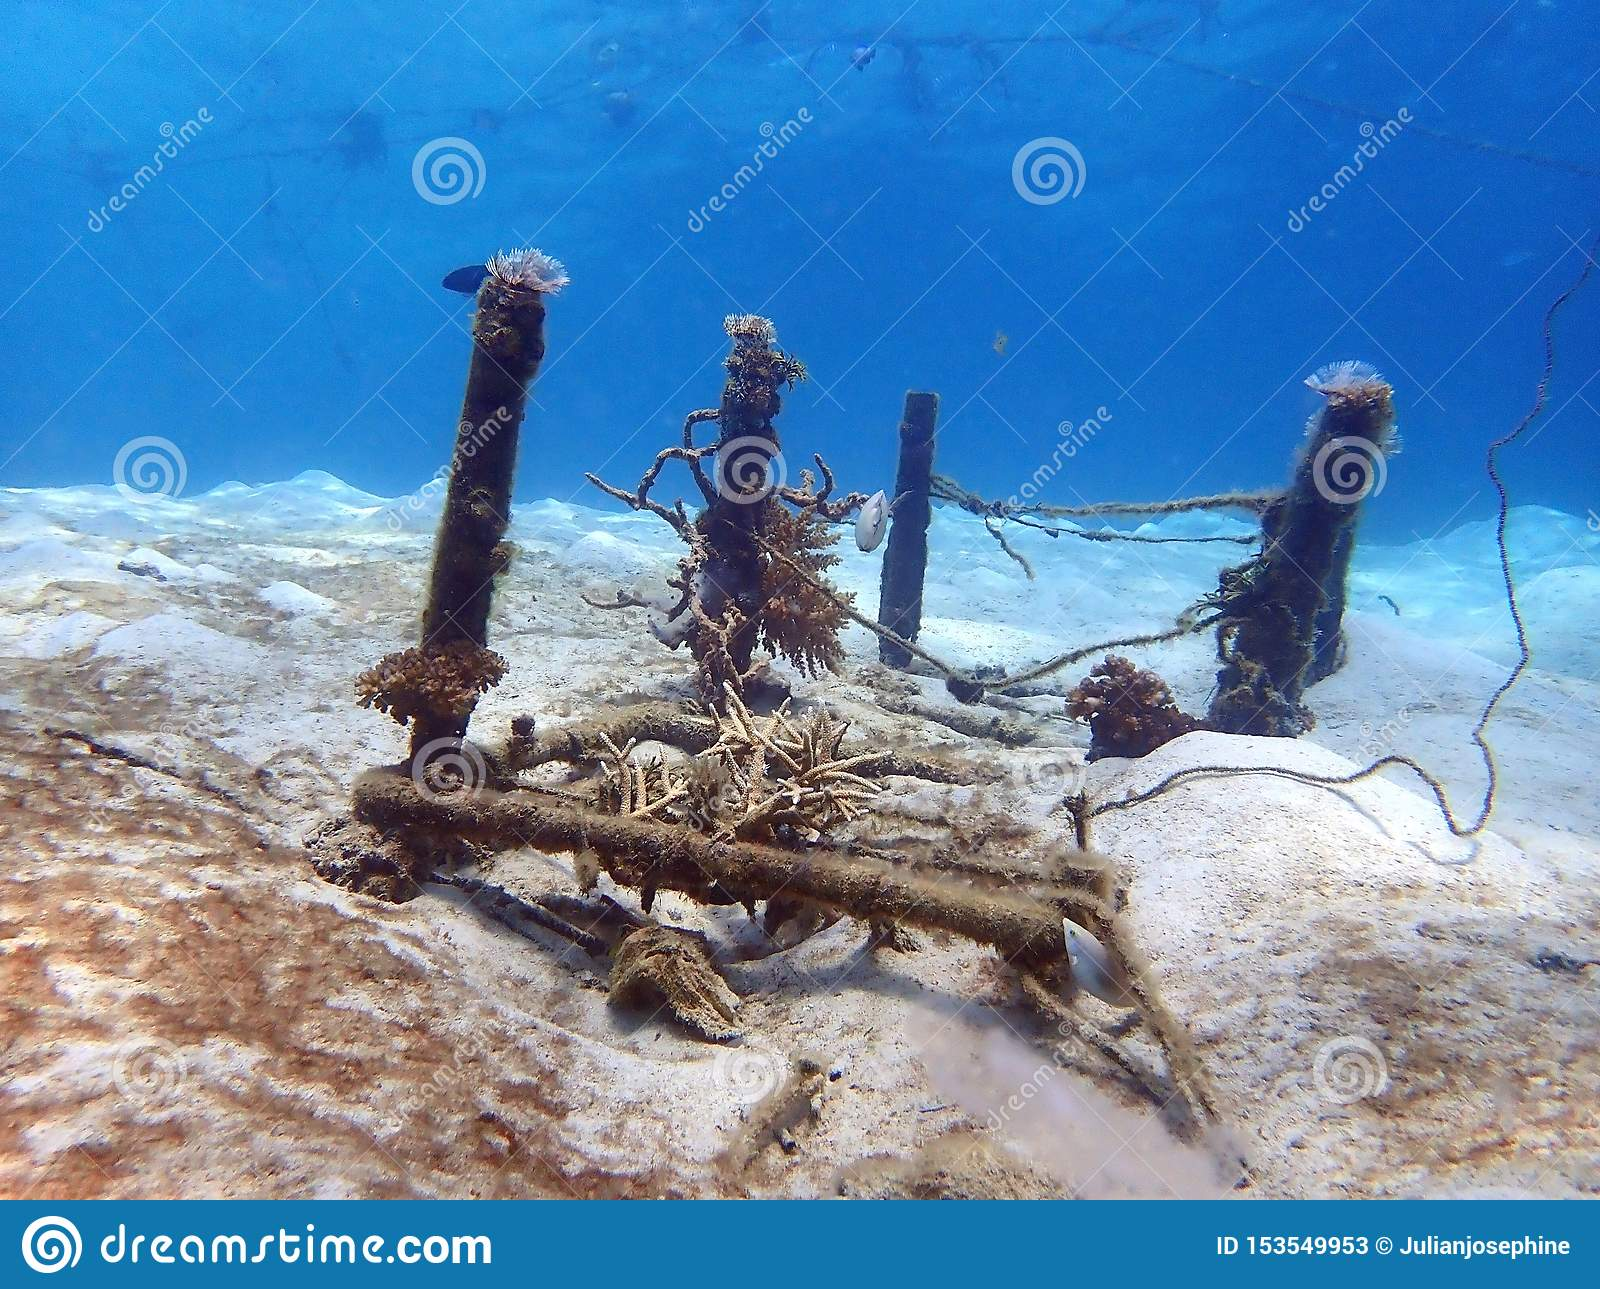 An abandoned table and tube coral grown on it in Tunku Abdul Rahman Park, Kota Kinabalu. Sabah, Malaysia. Borneo.